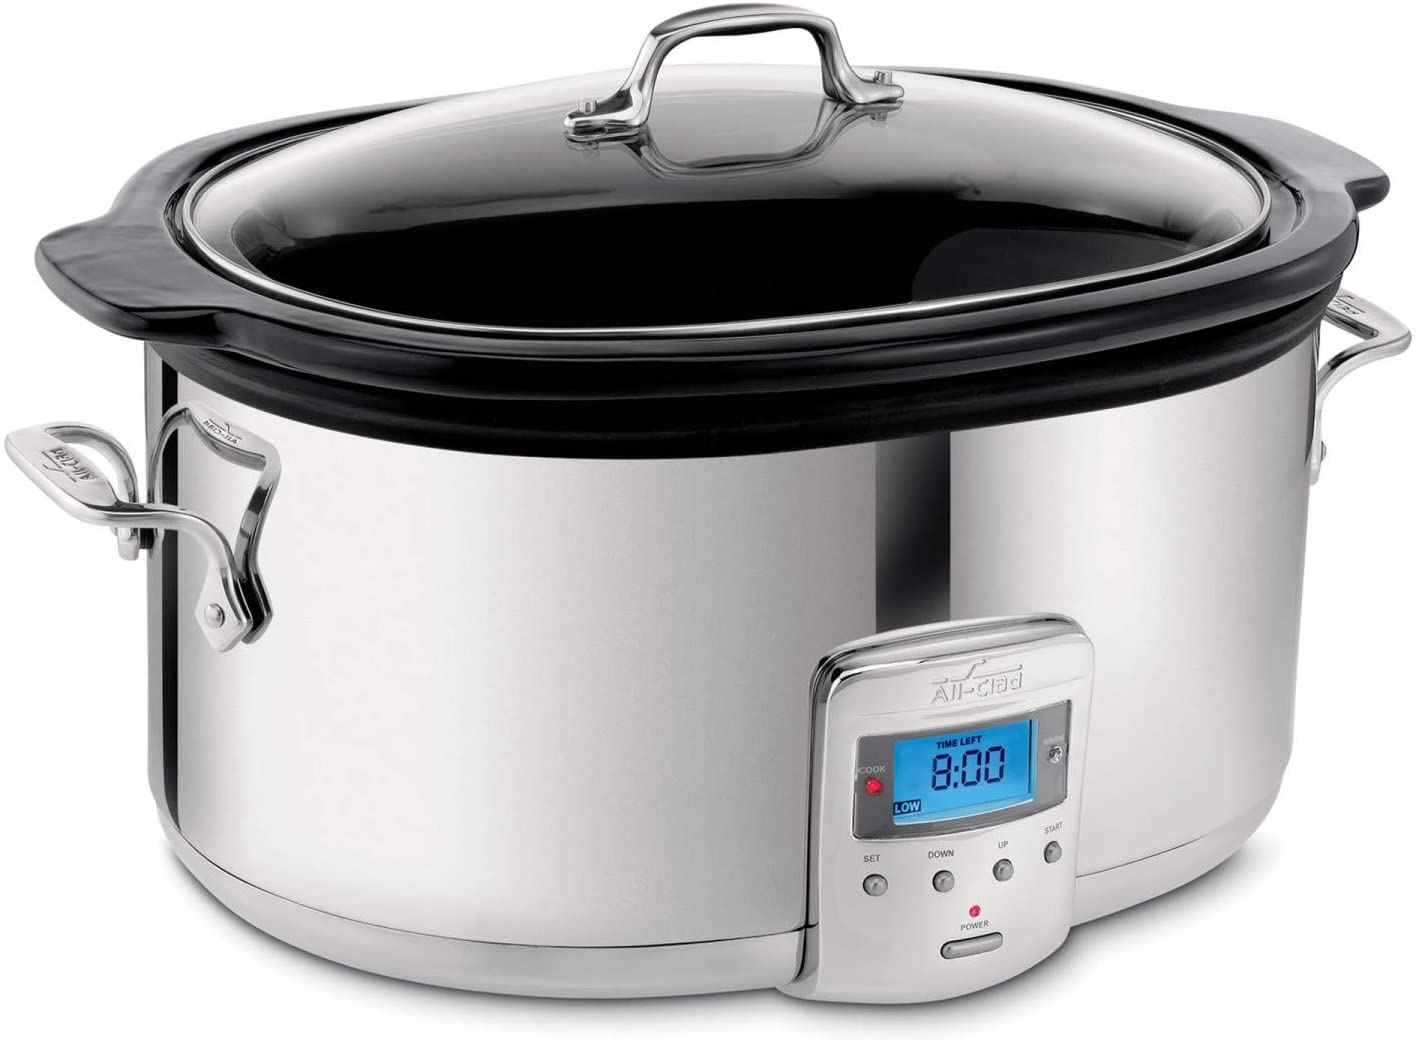 All-Clad SD700450 Programmable Oval-Shaped Slow Cooker with Black Ceramic Insert and Glass Lid, 6.5-Quart, Silver